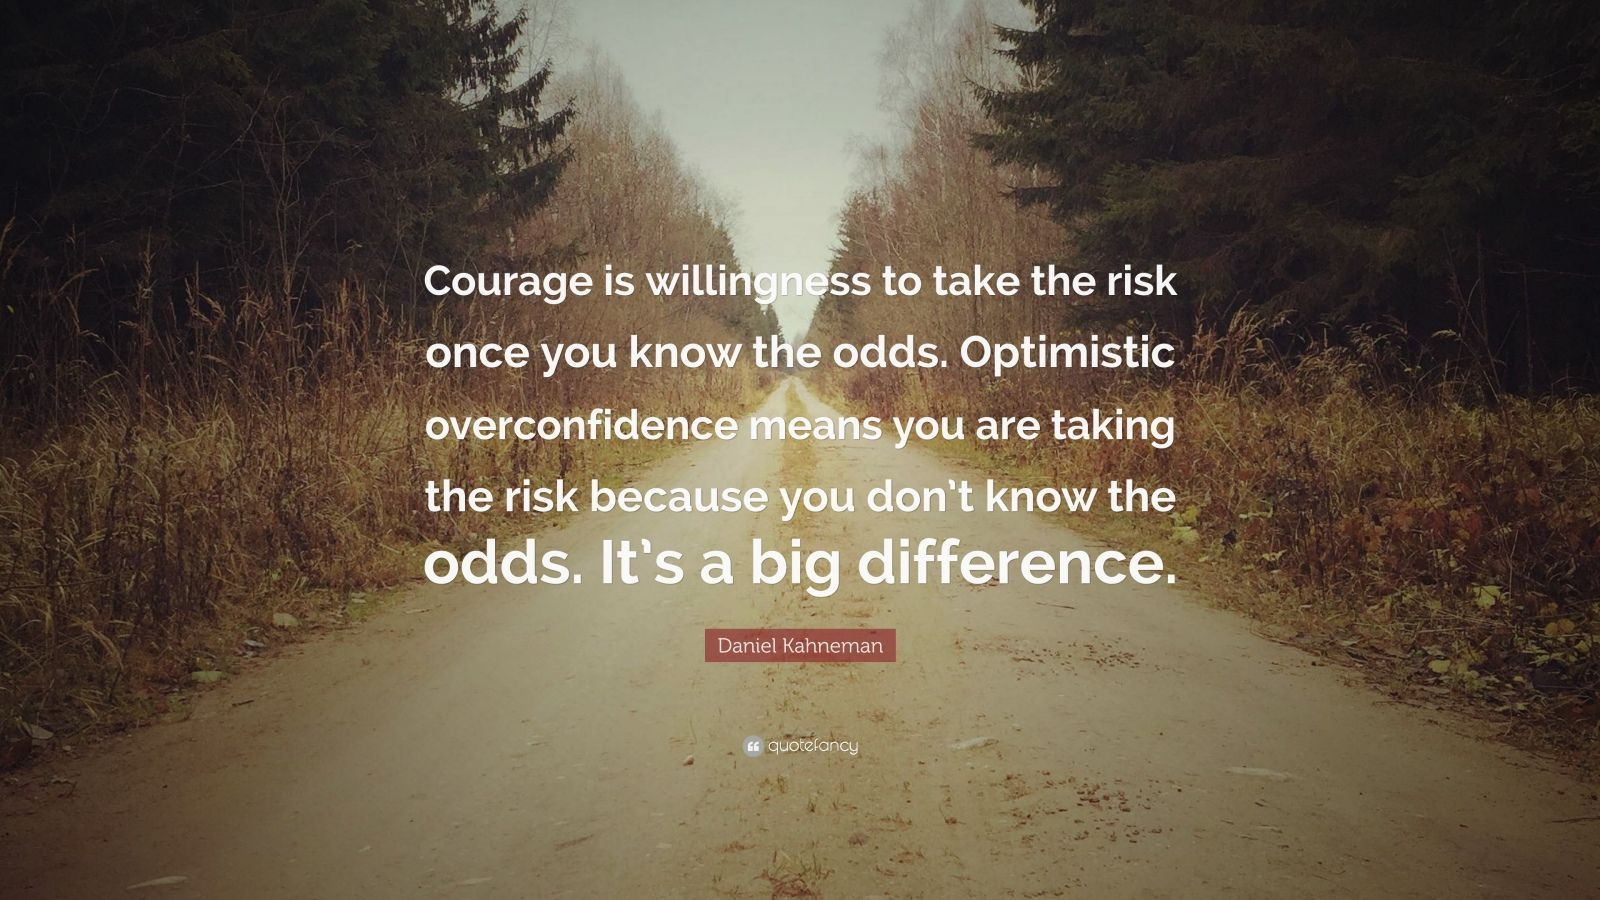 "Daniel Kahneman Quote: ""Courage is willingness to take the risk once you know the odds. Optimistic overconfidence means you are taking the risk because you don't know the odds. It's a big difference."""